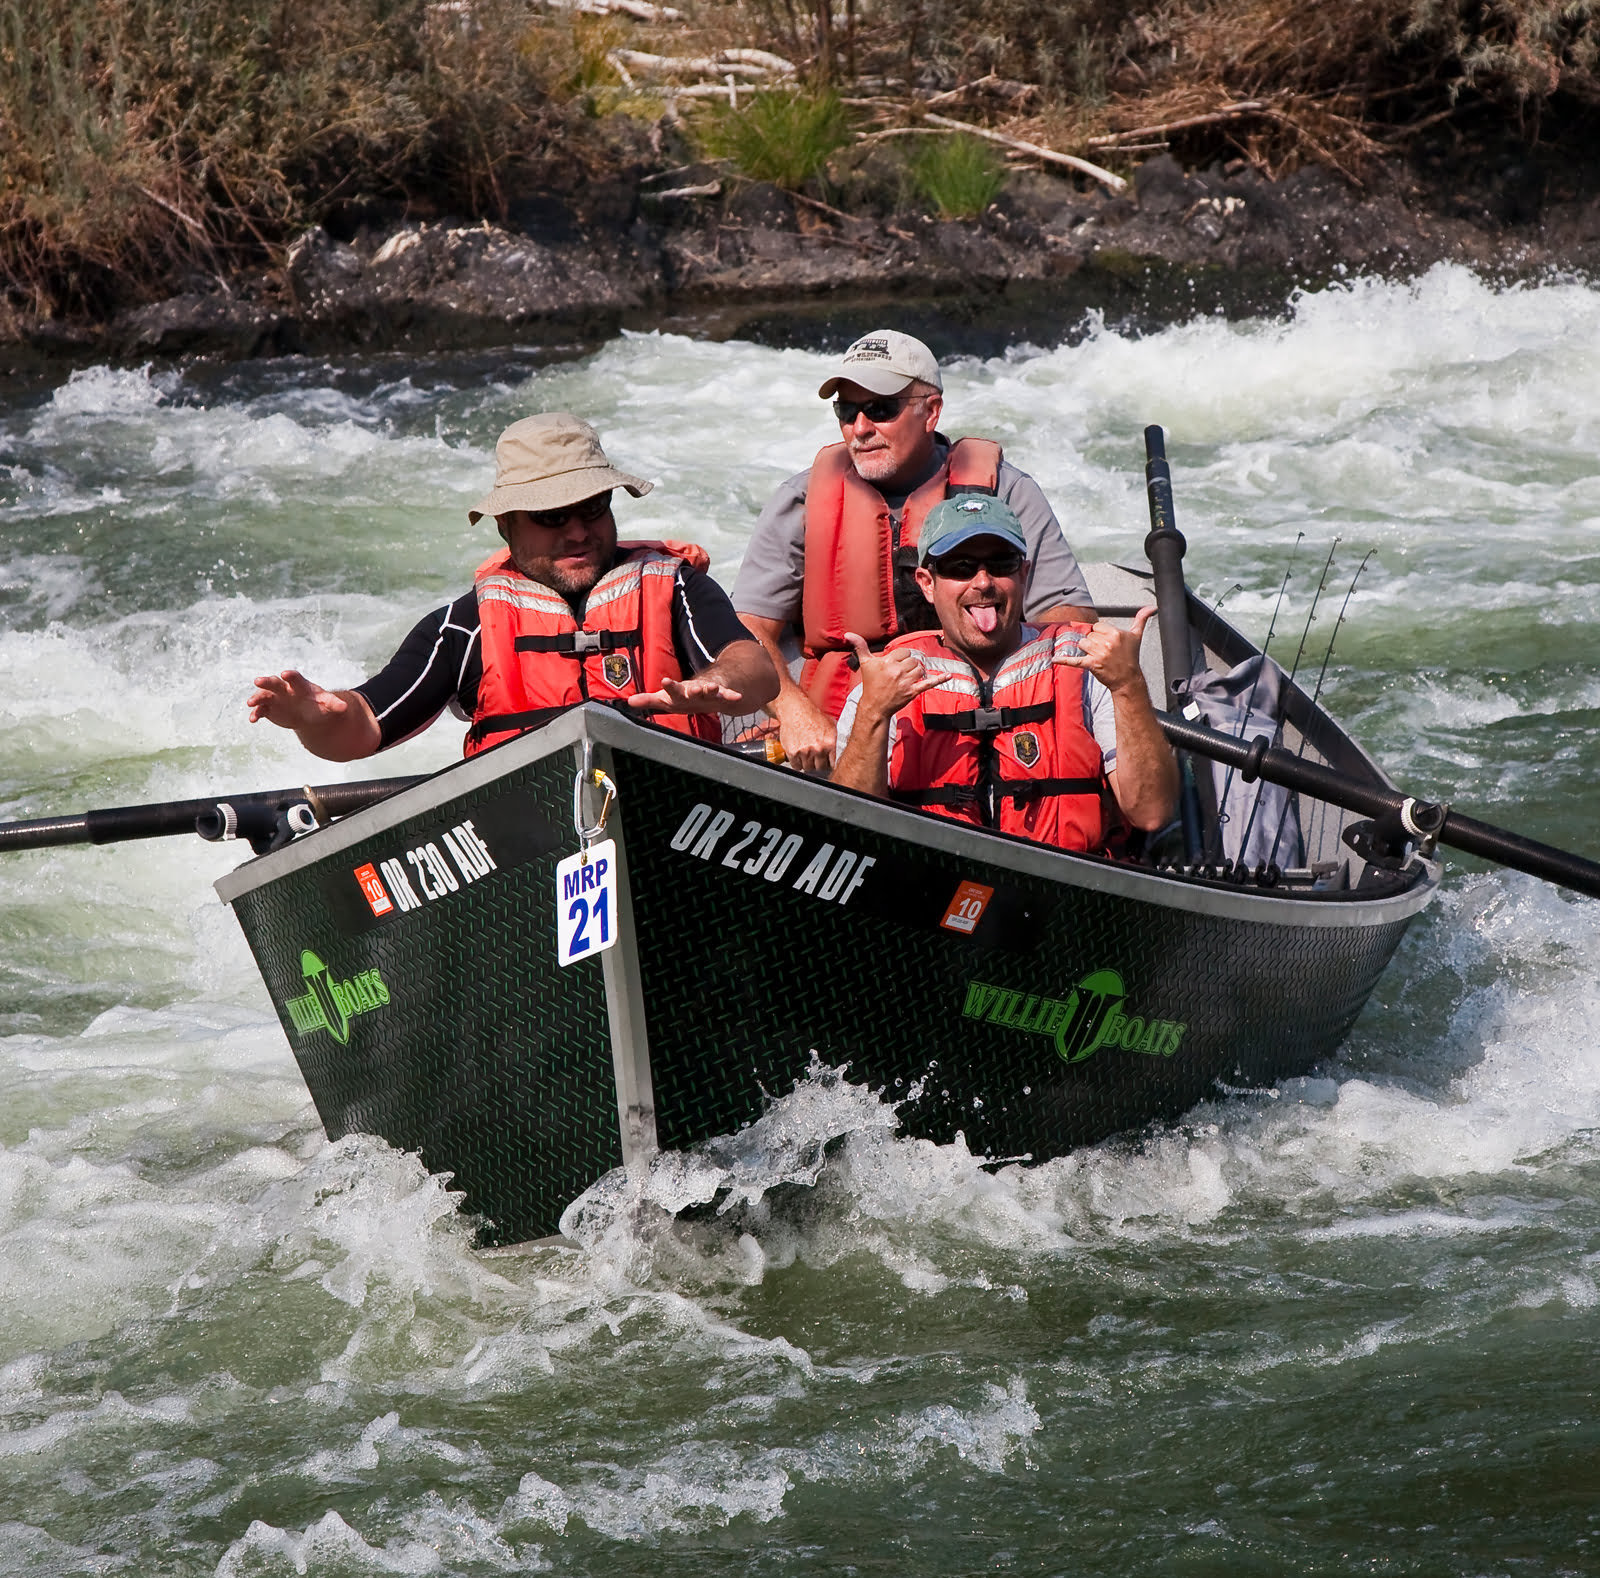 Whitewater Fishing Adventure through the Rogue River Canyon